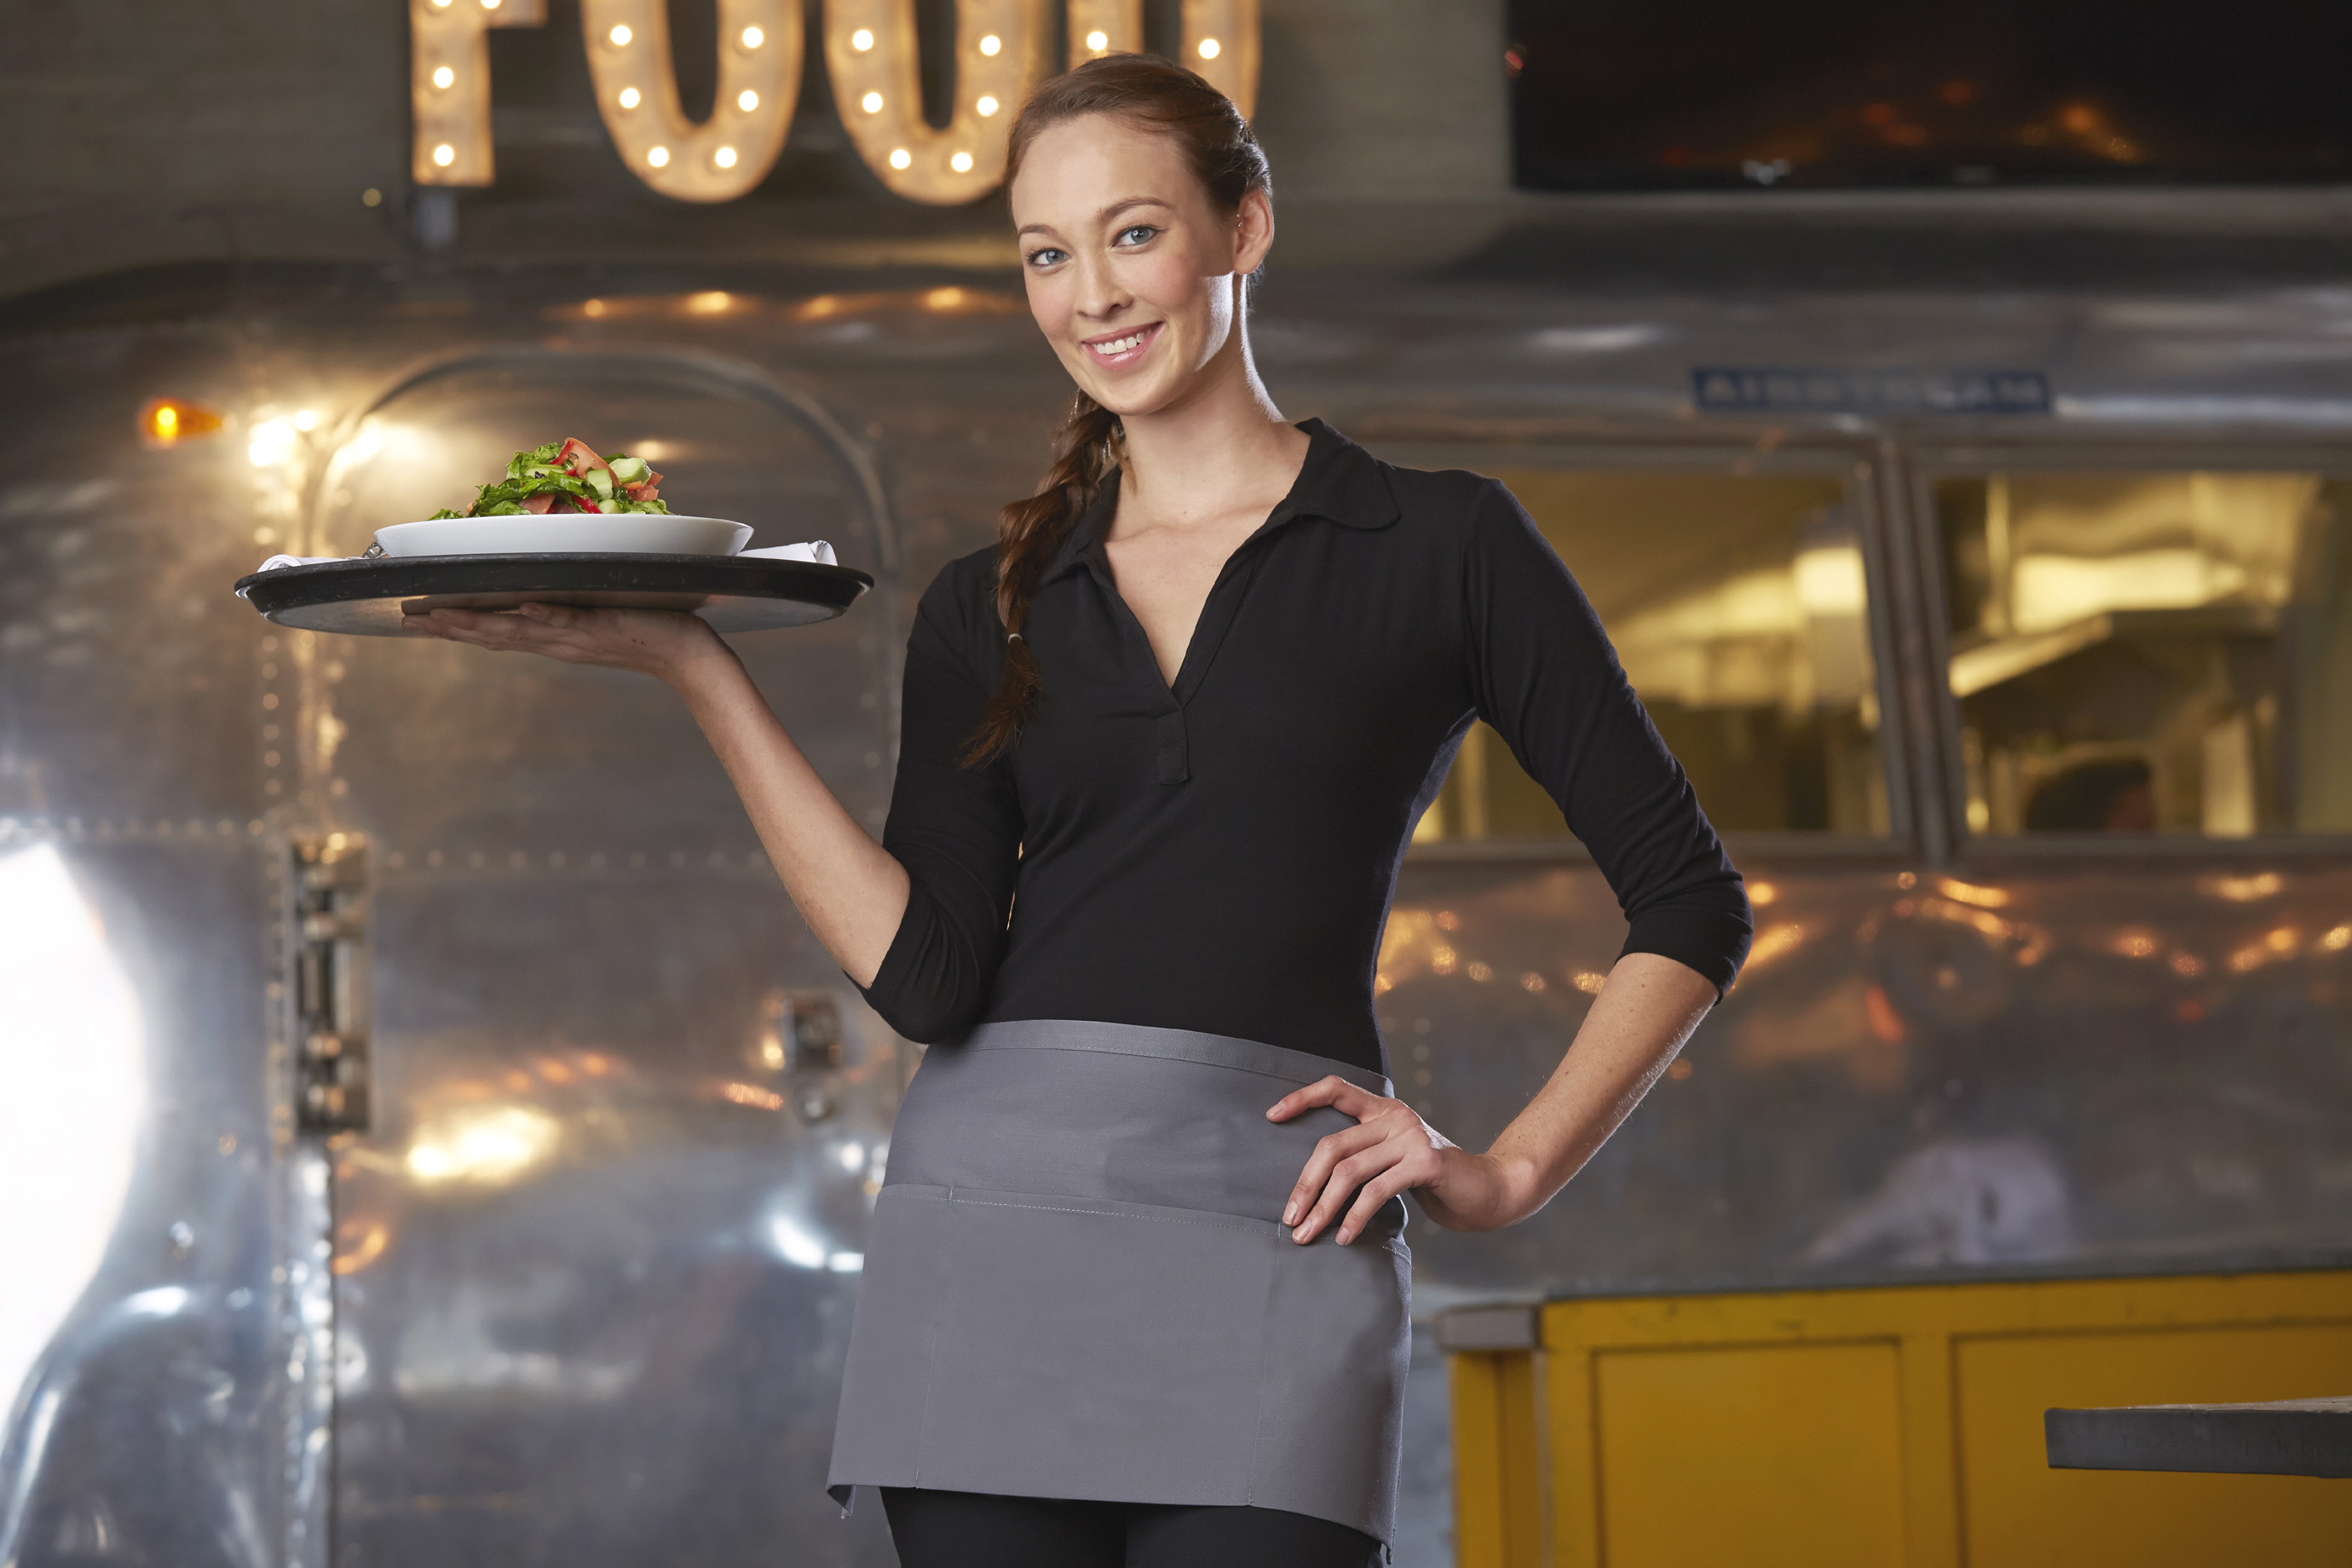 Waiter Uniforms Online - Wait Staff (Waitress) Uniforms Online ...